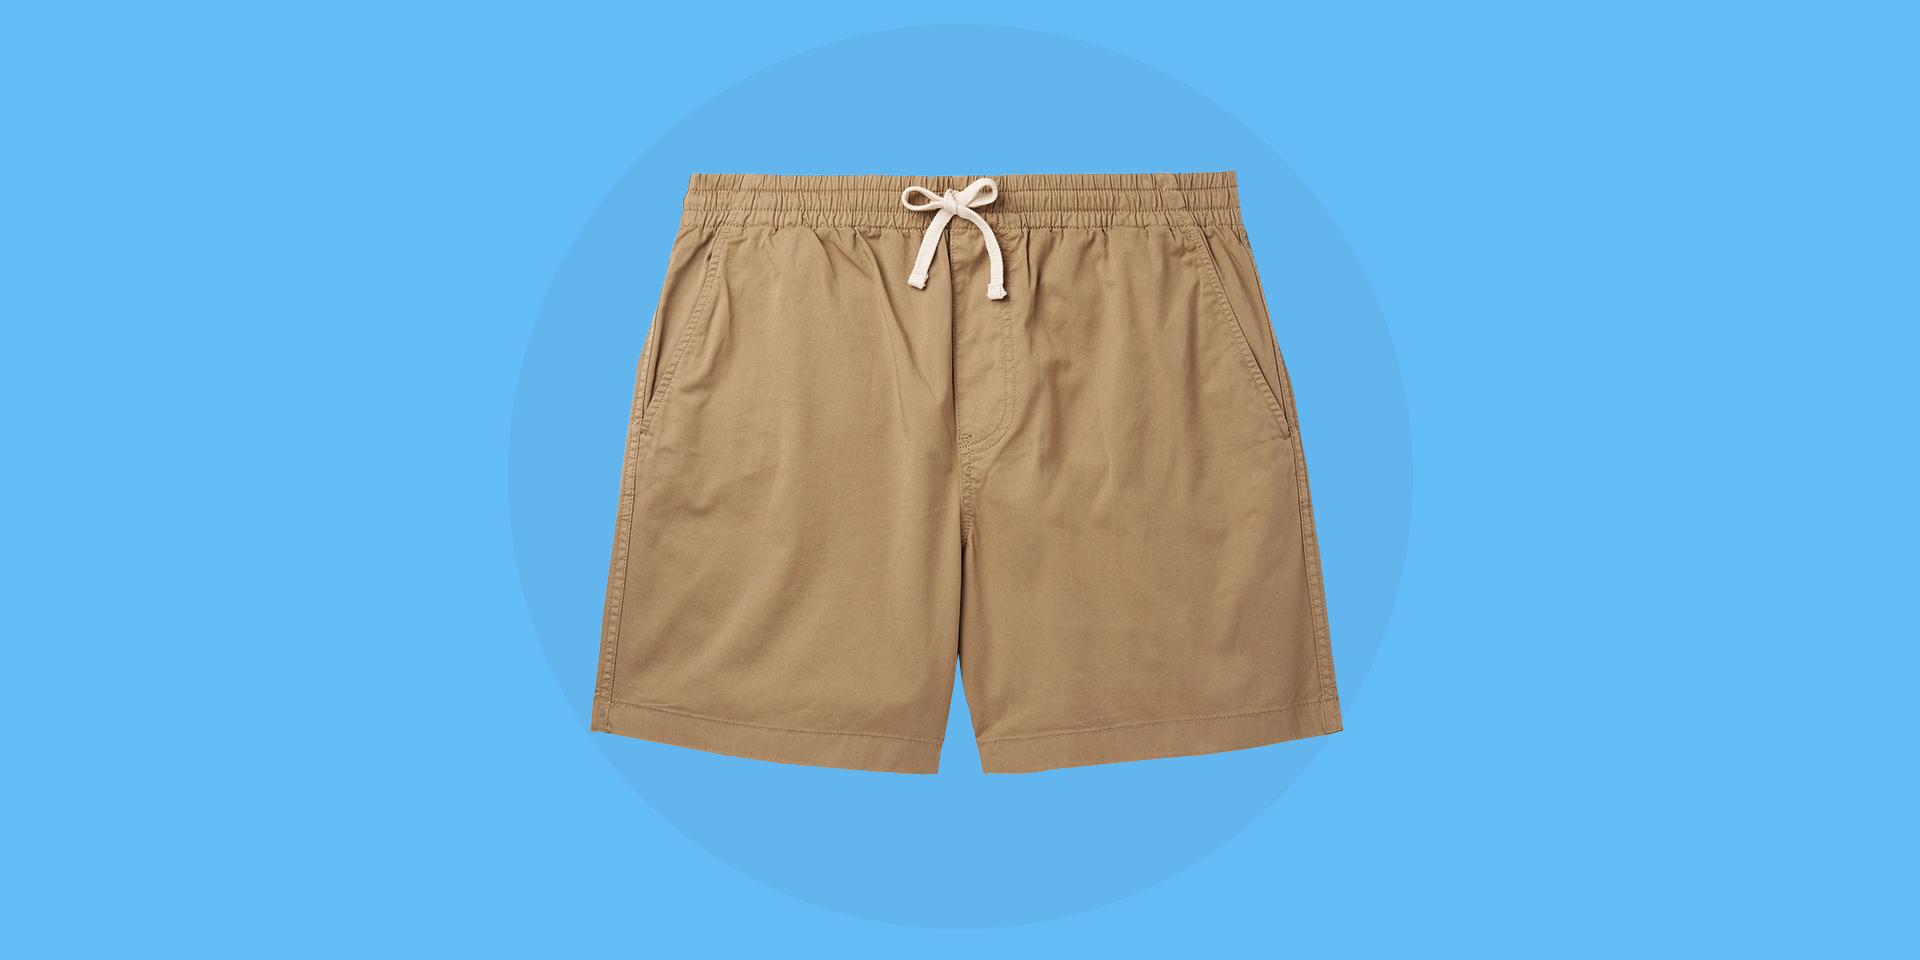 J.Crew's Dock Shorts Practically Demand to Be Bought in Bulk